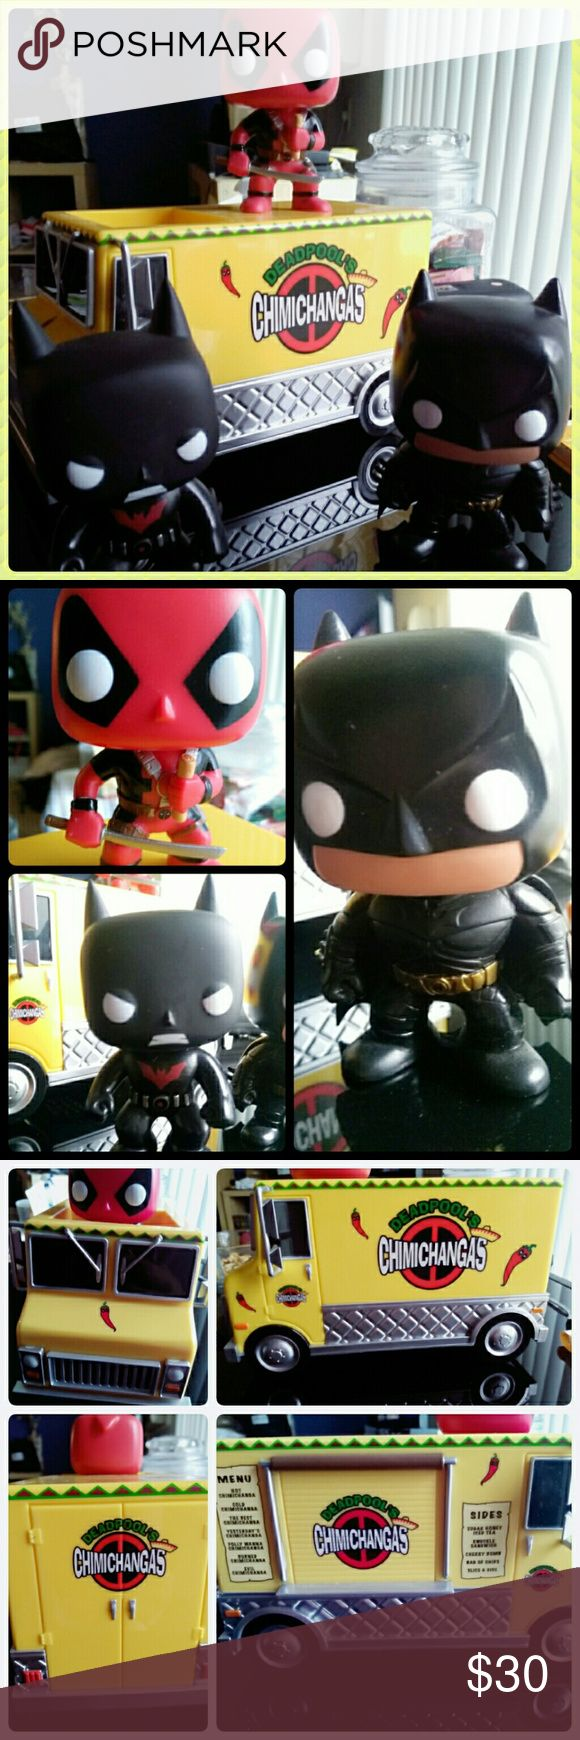 Bundle of Funko Pop Deadpool, Truck & 2 Batman Bundle includes pictured Funko Pop figurines, Deadpool Chimichanga Truck (Funko Pop #10) detachable Deadpool Funko clutching a chimichanga, Batman Beyond Terry Funko #33, & Batman Funko which I think may be Funko #19 The Dark Knight Batman by comparing images but PLEASE NOTE: unfortunately I am not 100% sure which Funko it is, this is only my guess based on image search. I do not have the original boxes for any of these, but the figures were…